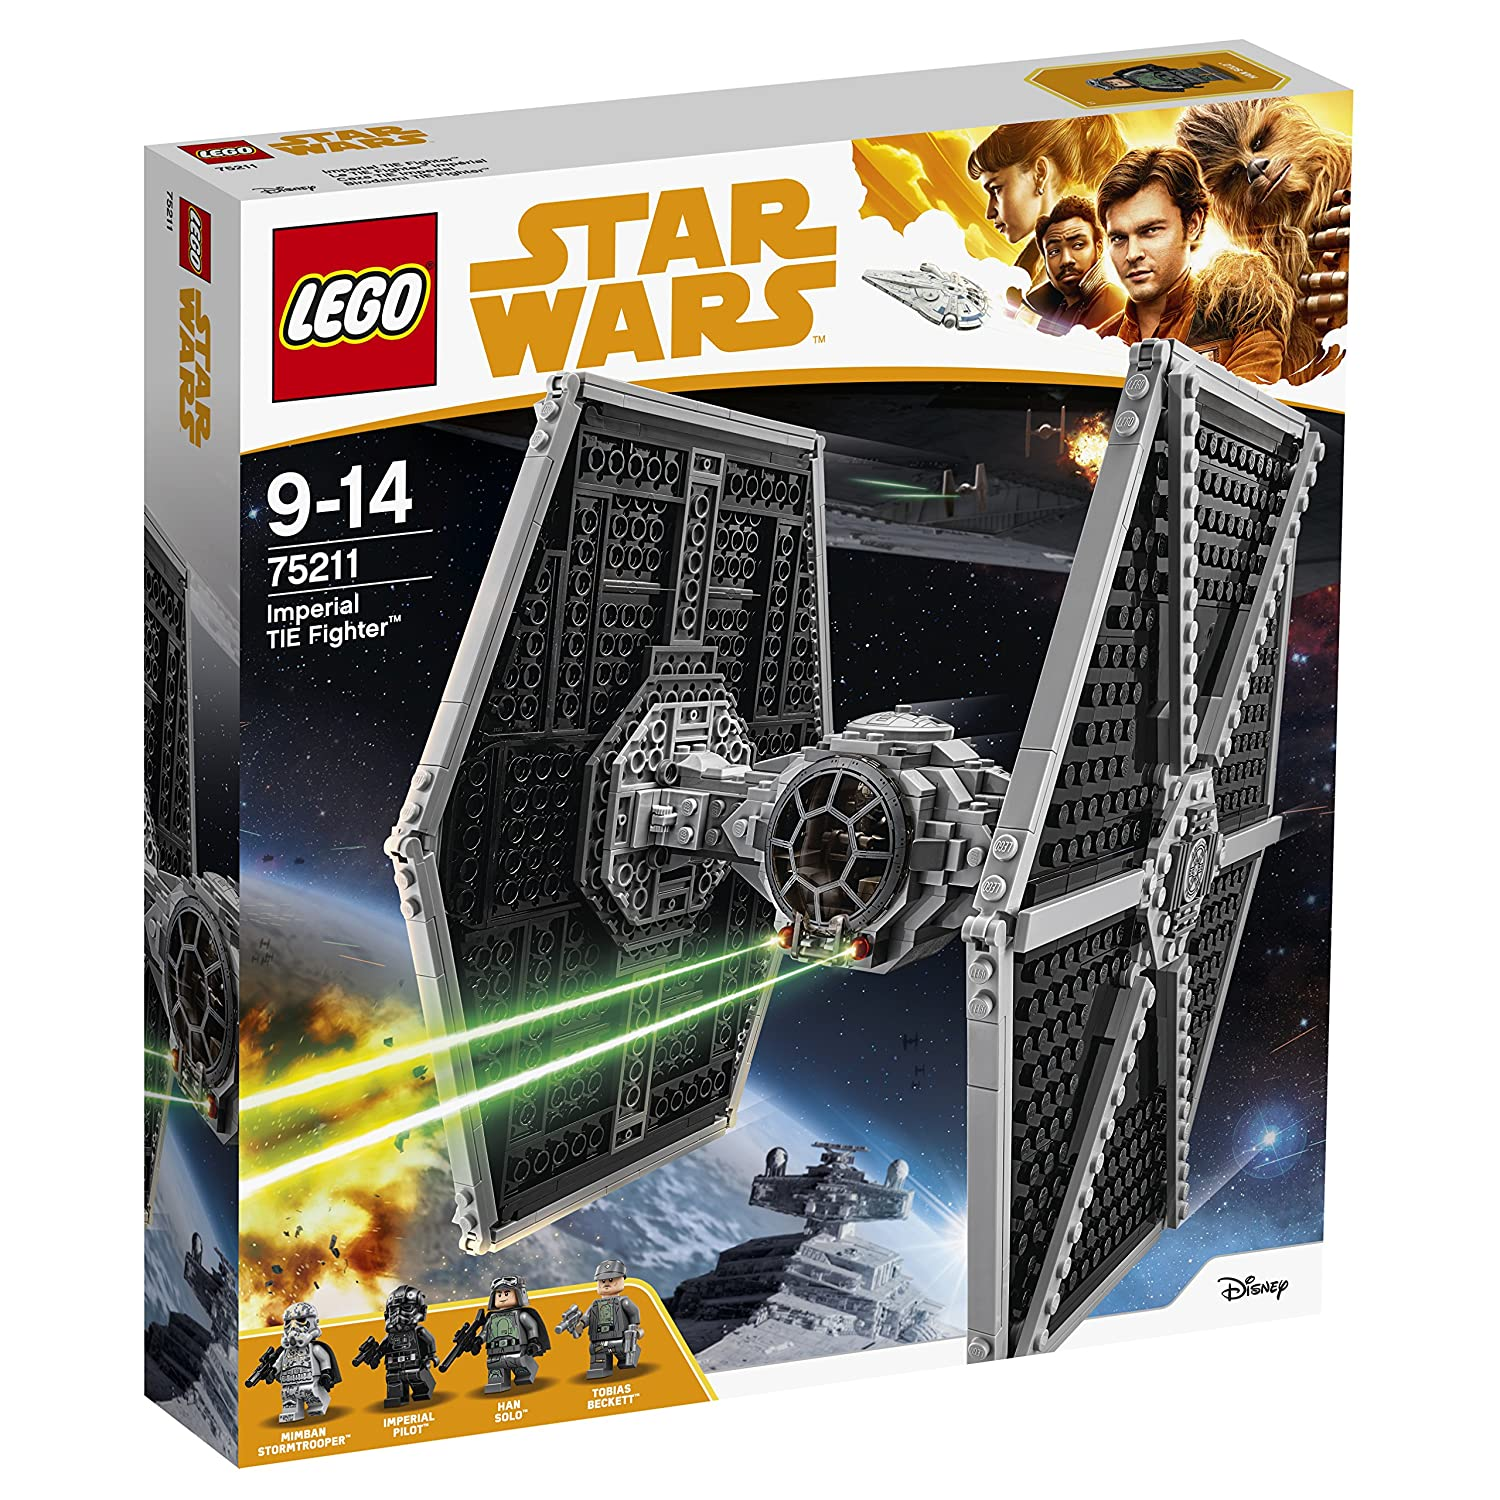 LEGO Star Wars Imperial TIE Fighter 75211 Star Wars Spielzeug LEGO®